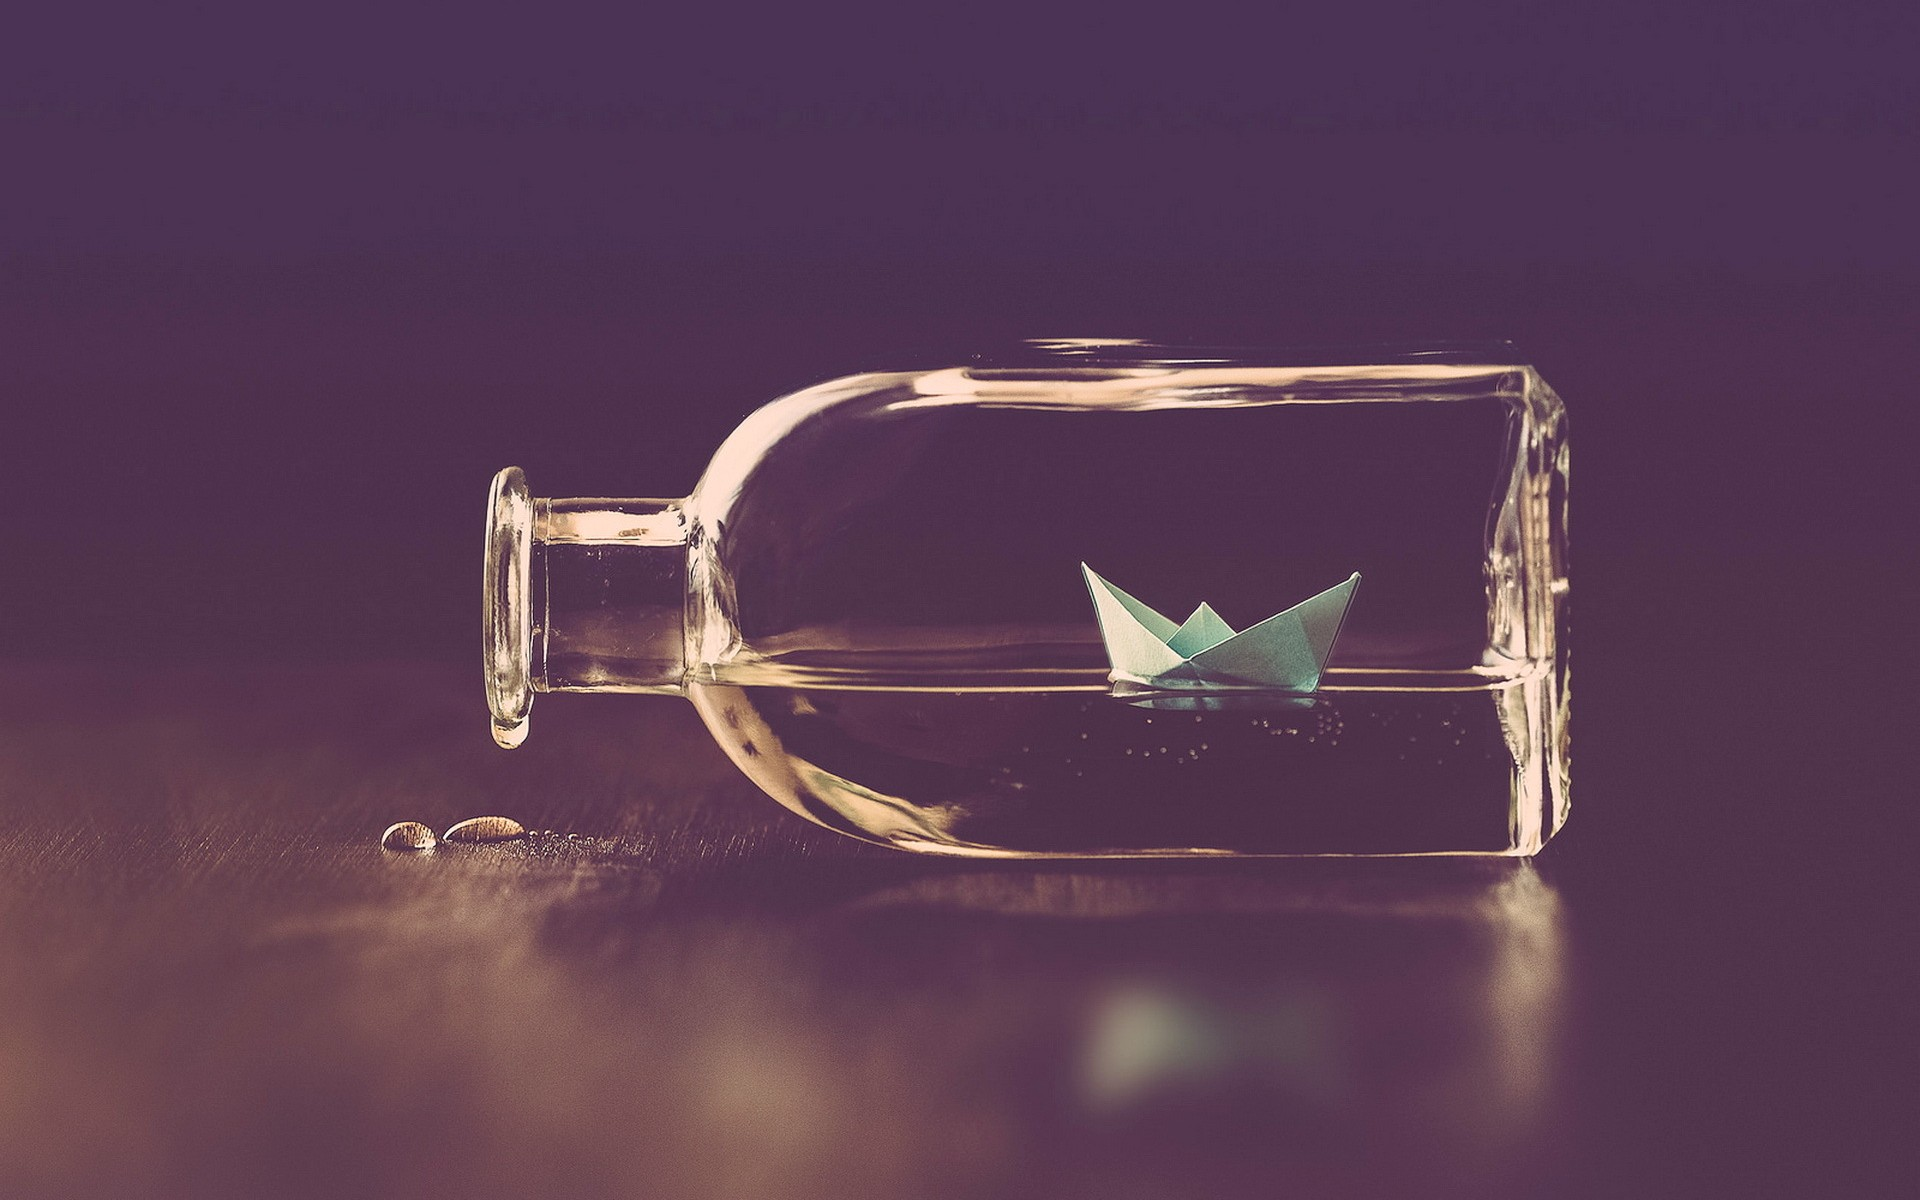 bottle message, water, surface, paper boat